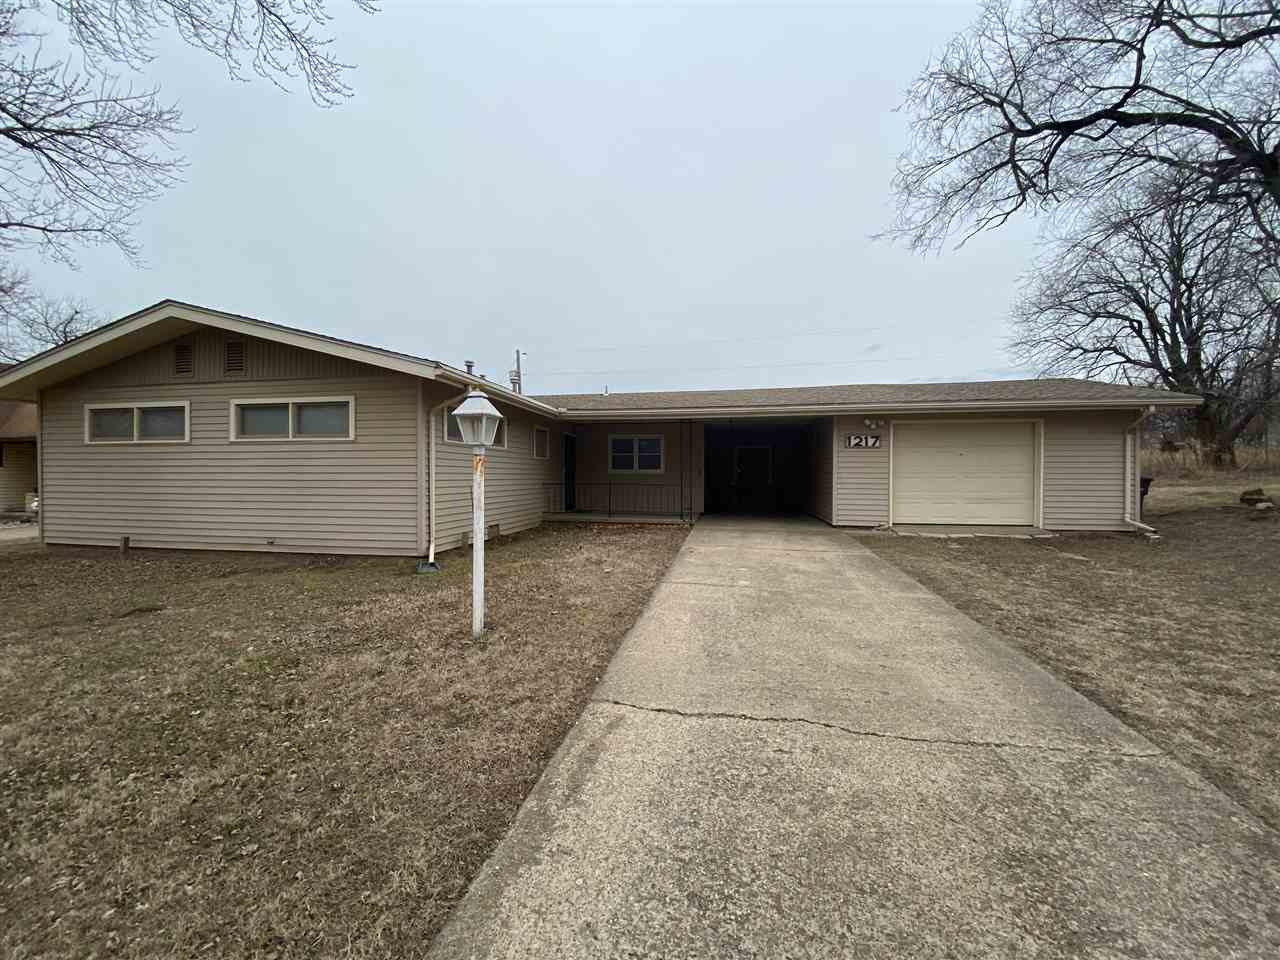 Located in a quiet location this ranch property offers you a quiet country feel with the convenience of town close by! With a newer roof and brand new central h/a this property has been well maintained with both a garage and carport! Call listing agent today to schedule a showing!